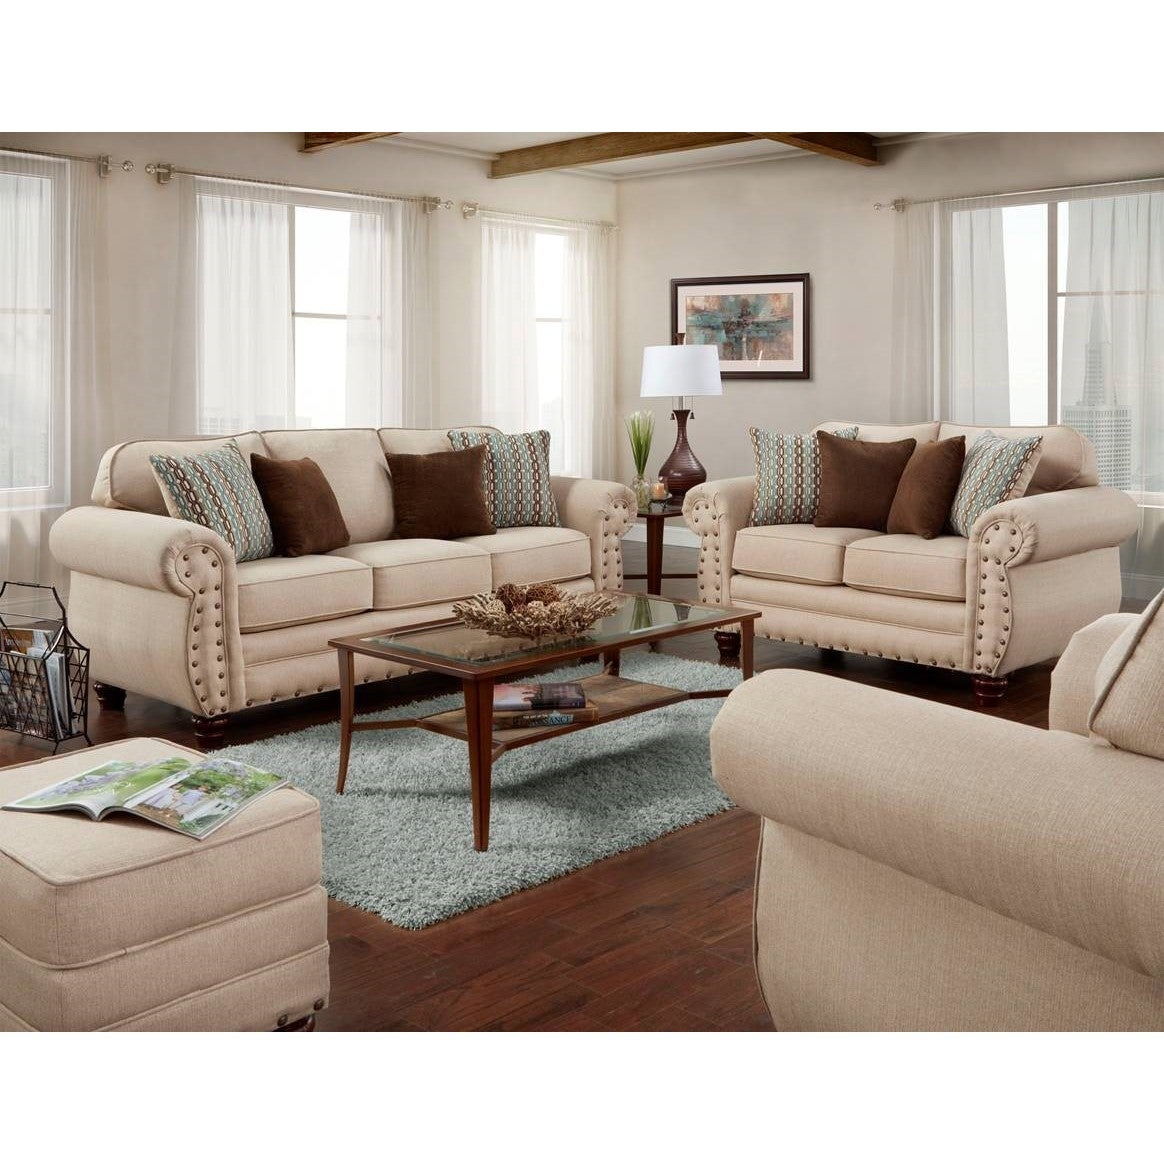 American Furniture Classics Abington Sand Four Piece Set Including Sofa Loveseat Chair And Ottoman Overstock 15659907